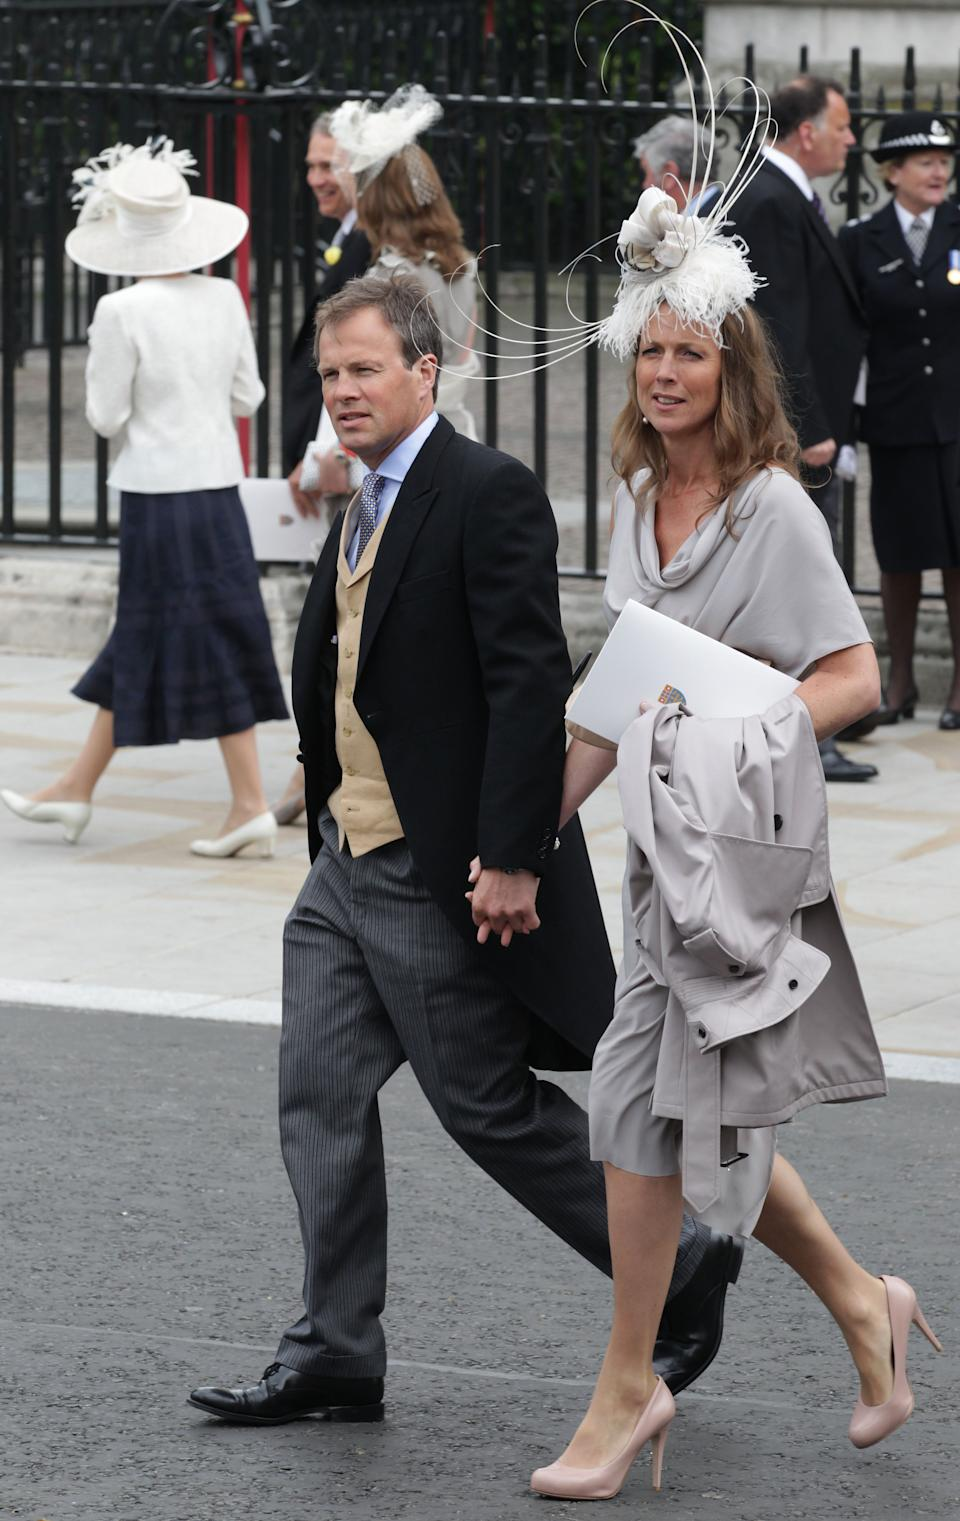 LONDON, ENGLAND - APRIL 29:  Tom Bradby from ITV News with his wife Claudia exit following the marriage of Prince William, Duke of Cambridge and Catherine, Duchess of Cambridge at Westminster Abbey on April 29, 2011 in London, England. The marriage of the second in line to the British throne was led by the Archbishop of Canterbury and was attended by 1900 guests, including foreign Royal family members and heads of state. Thousands of well-wishers from around the world have also flocked to London to witness the spectacle and pageantry of the Royal Wedding.  (Photo by Chris Jackson/Getty Images)